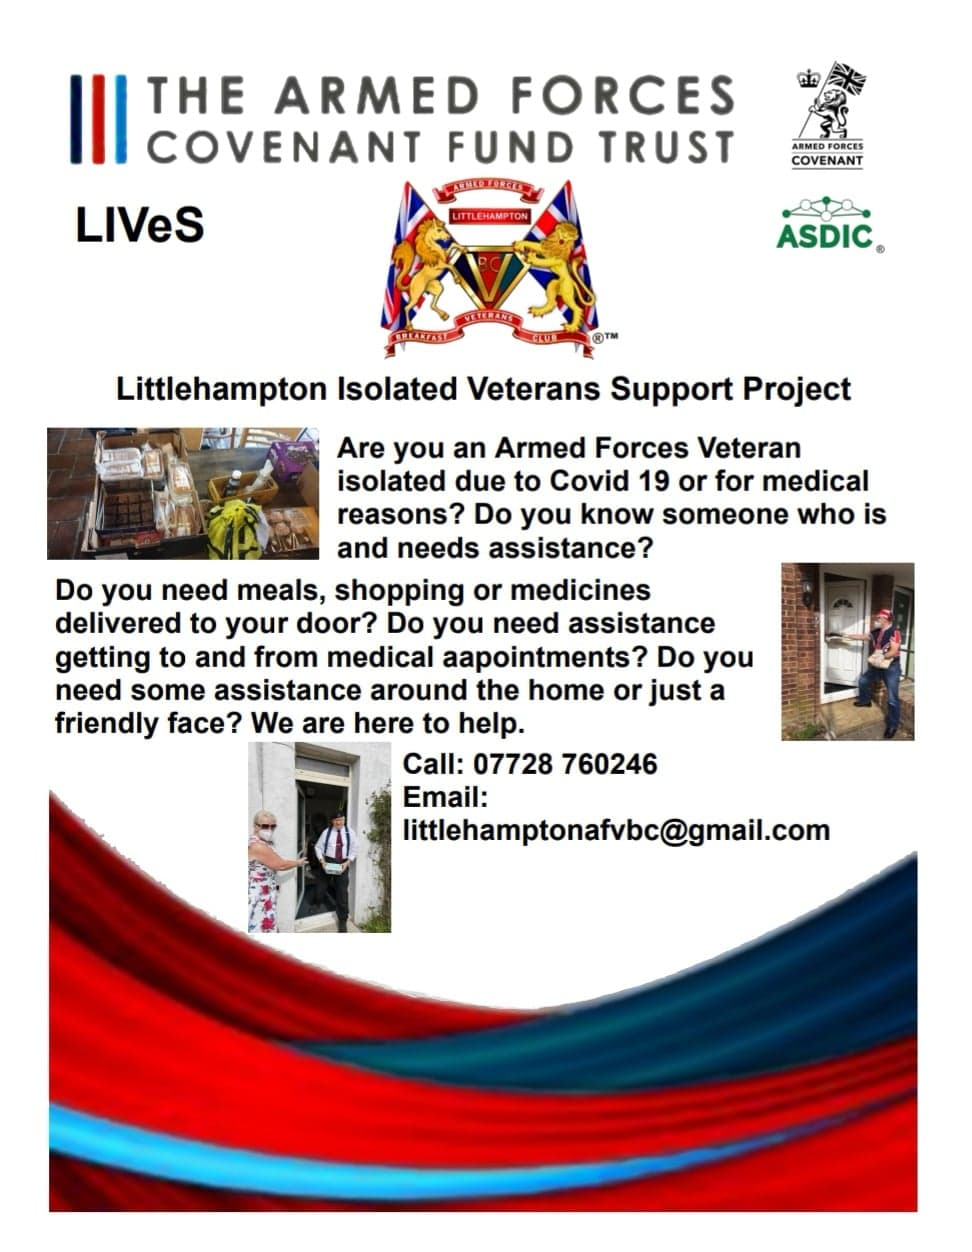 Little Hampton Isolated Veterans Support Project